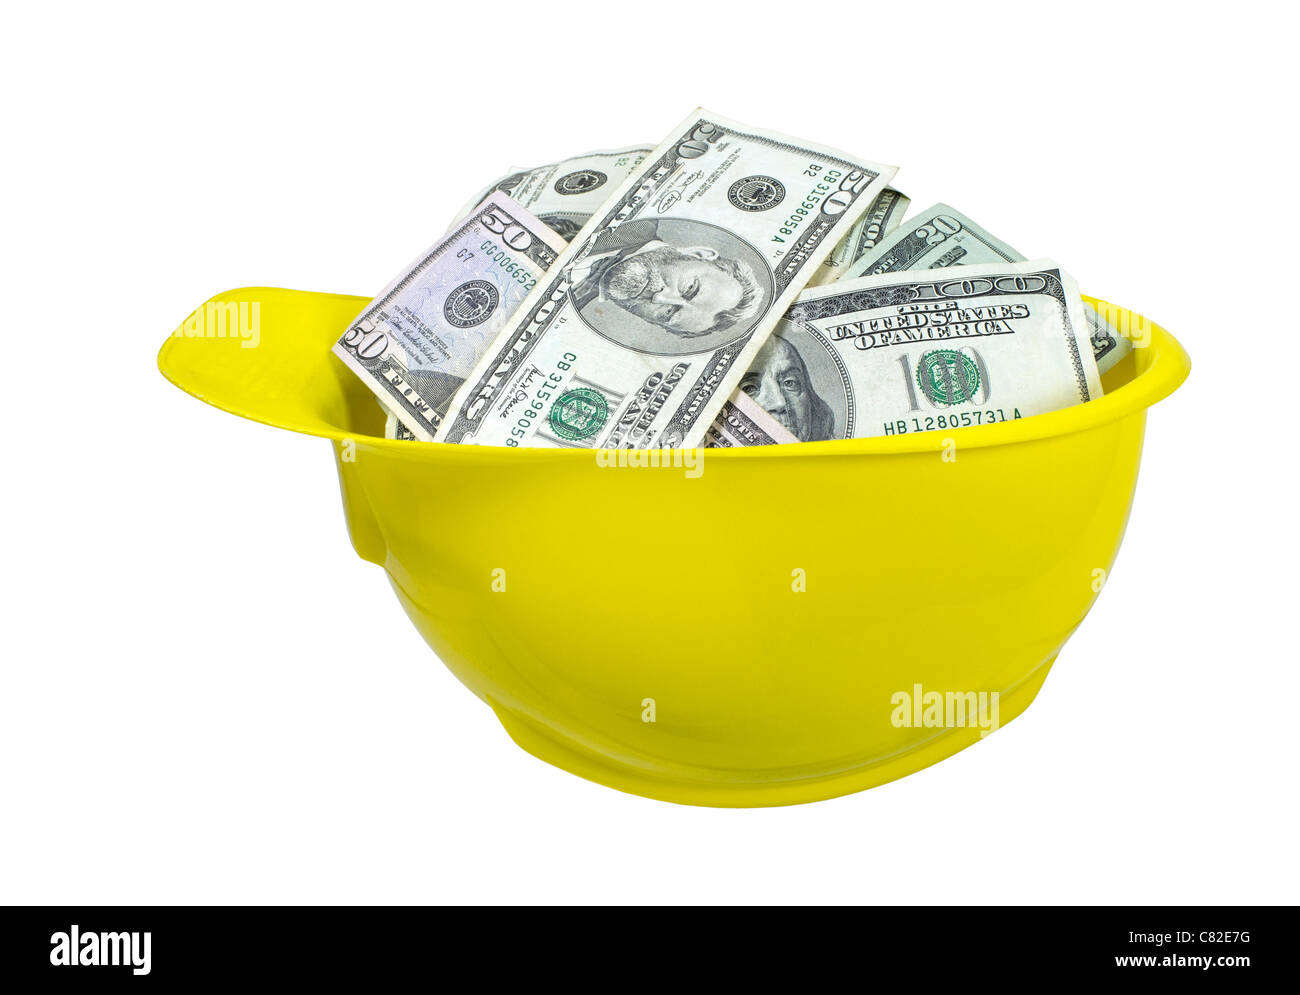 Yellow hard hat worn for protection when working on construction sites full of large amounts of money - path included - Stock Image